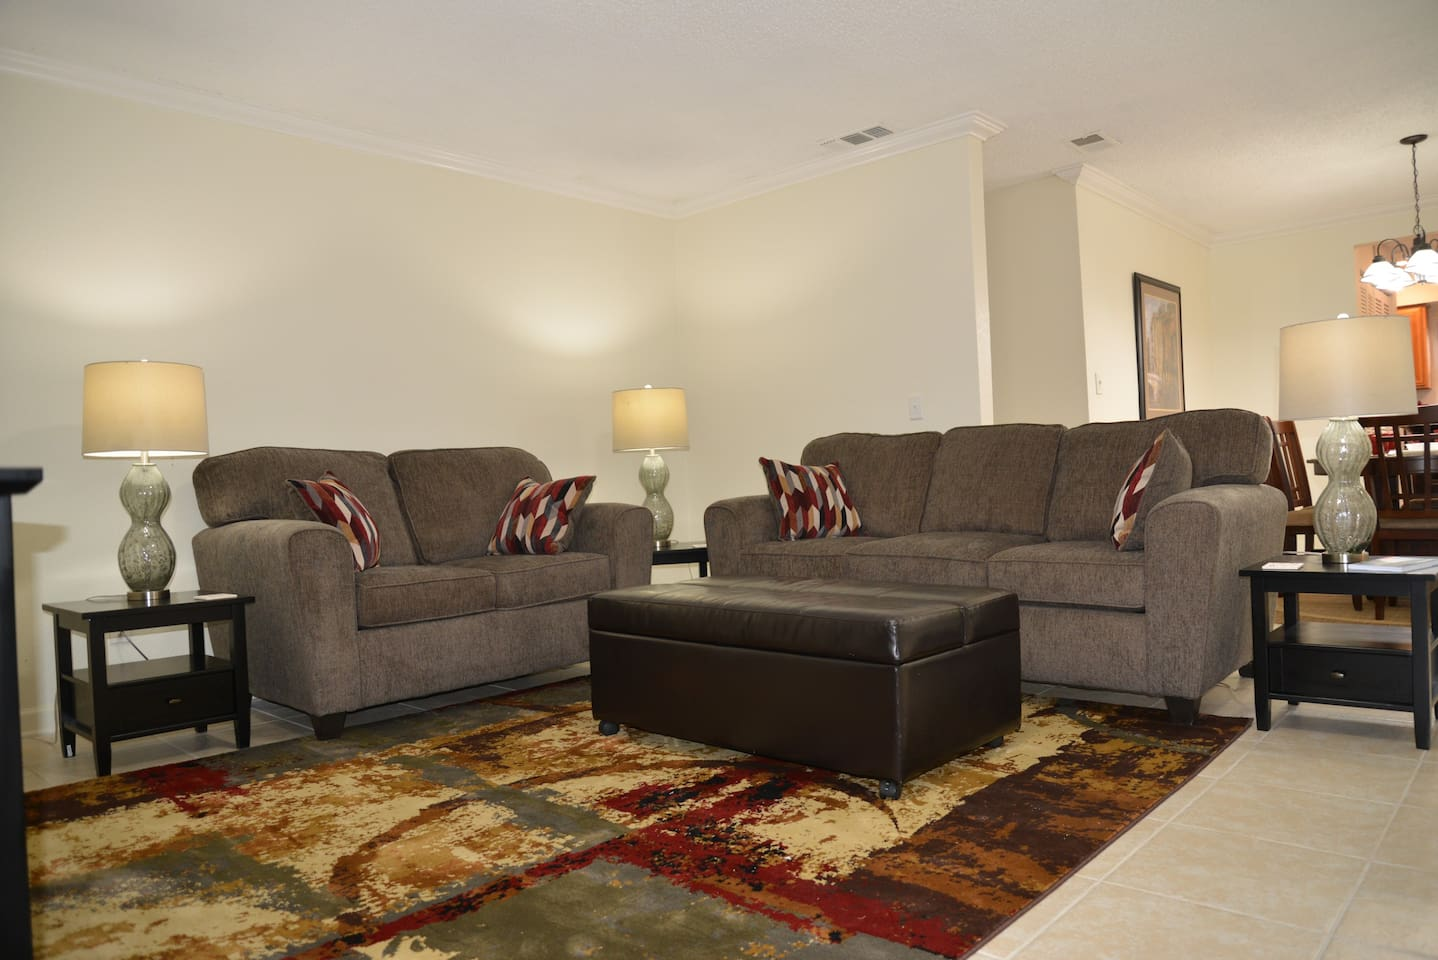 Living room - ottoman folds out into a twin bed which can be rolled into the master bedroom or the queen bedroom if needed